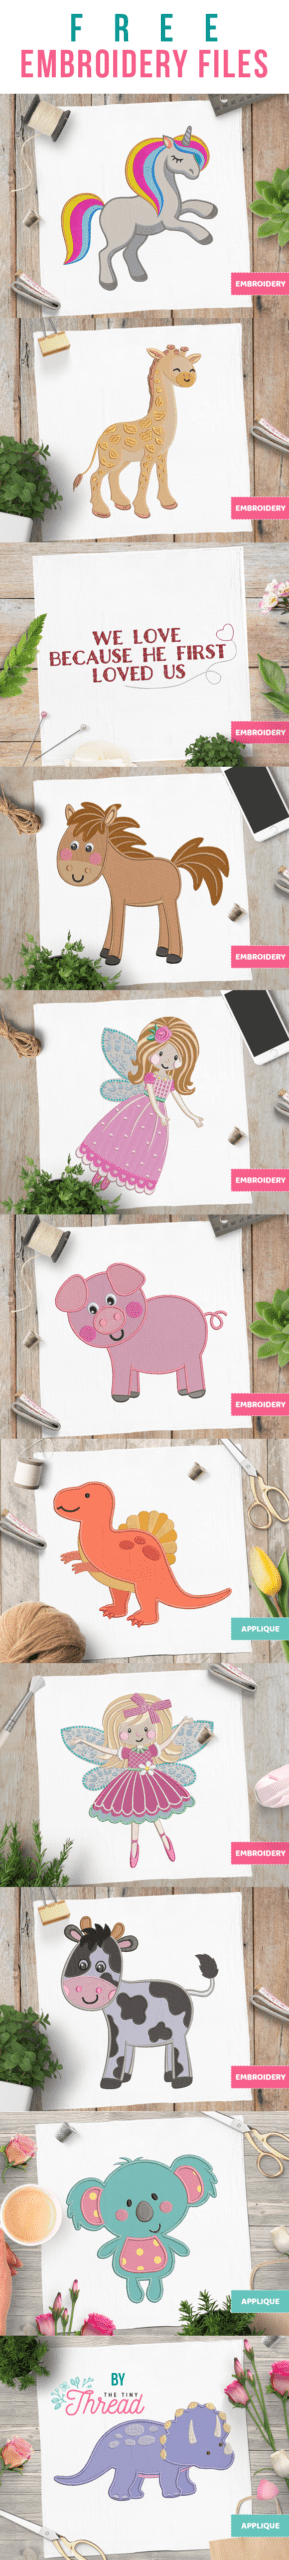 Free Applique designs and embroidery designs